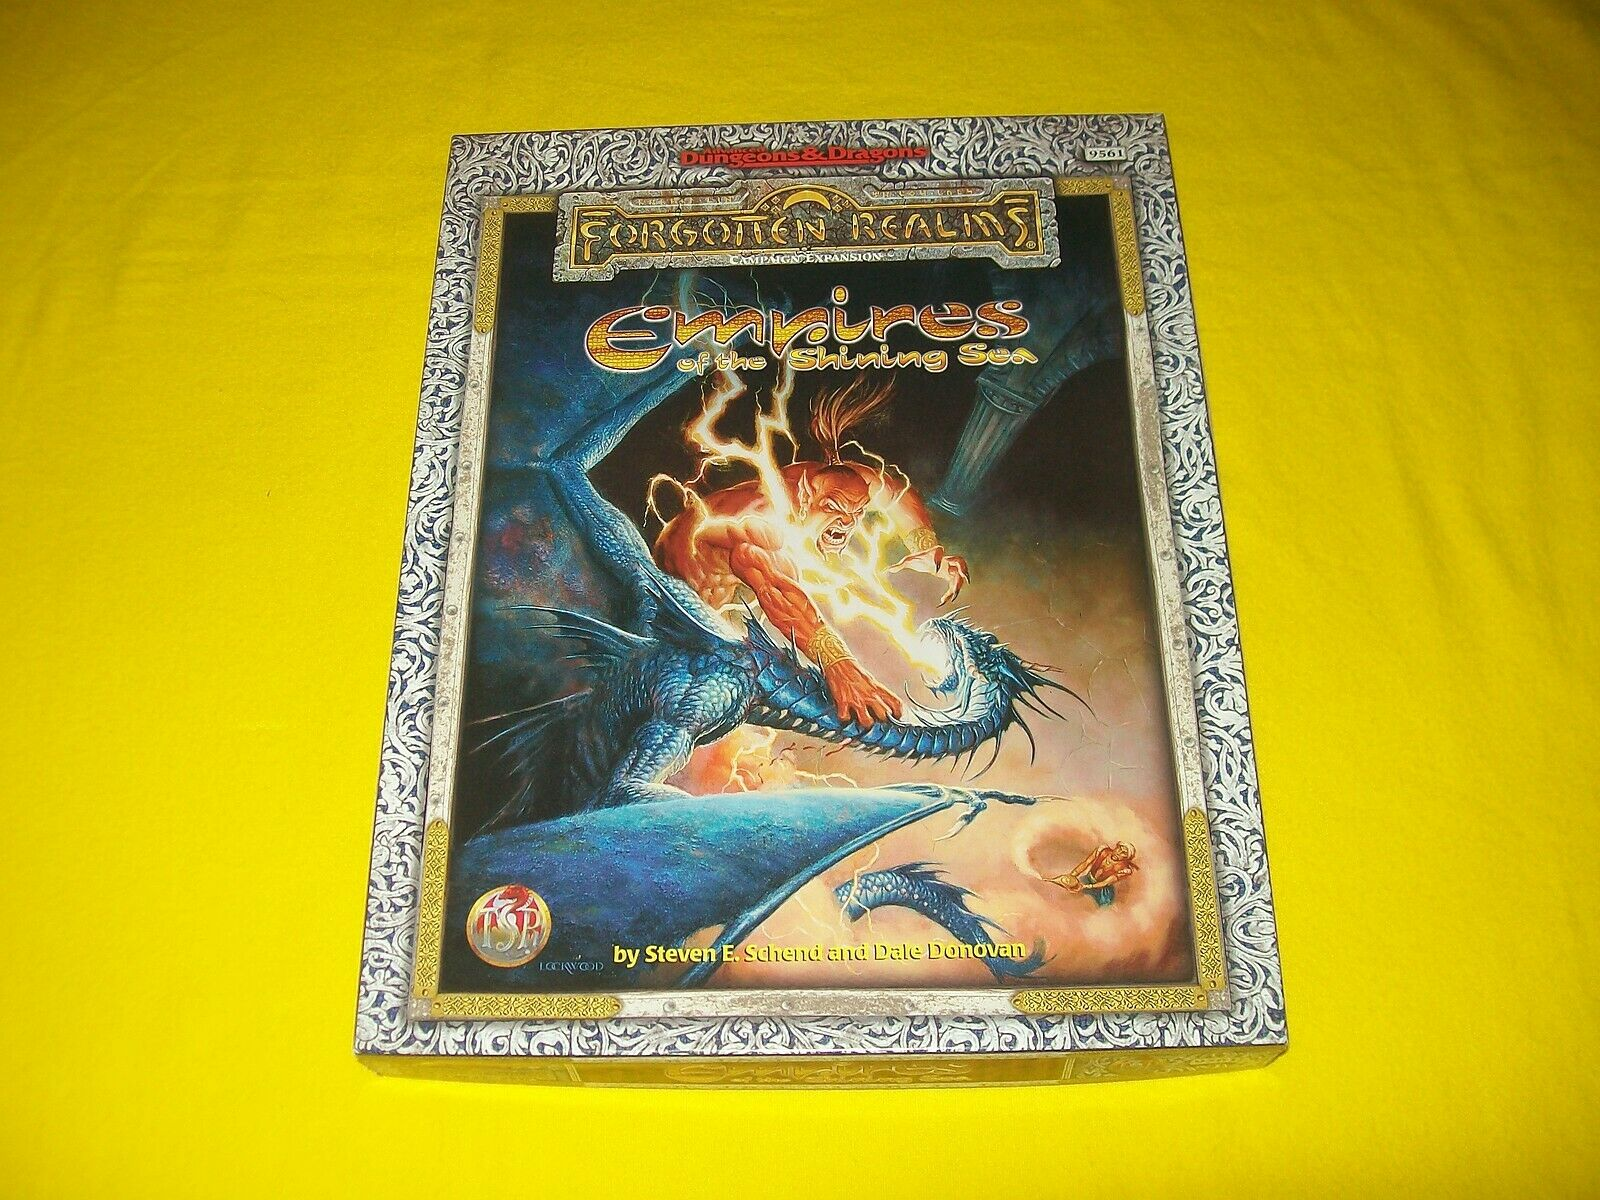 Imperios de los mares brillante Box Set Dungeons & Dragons AD&D Realms TSR 9561 - 2